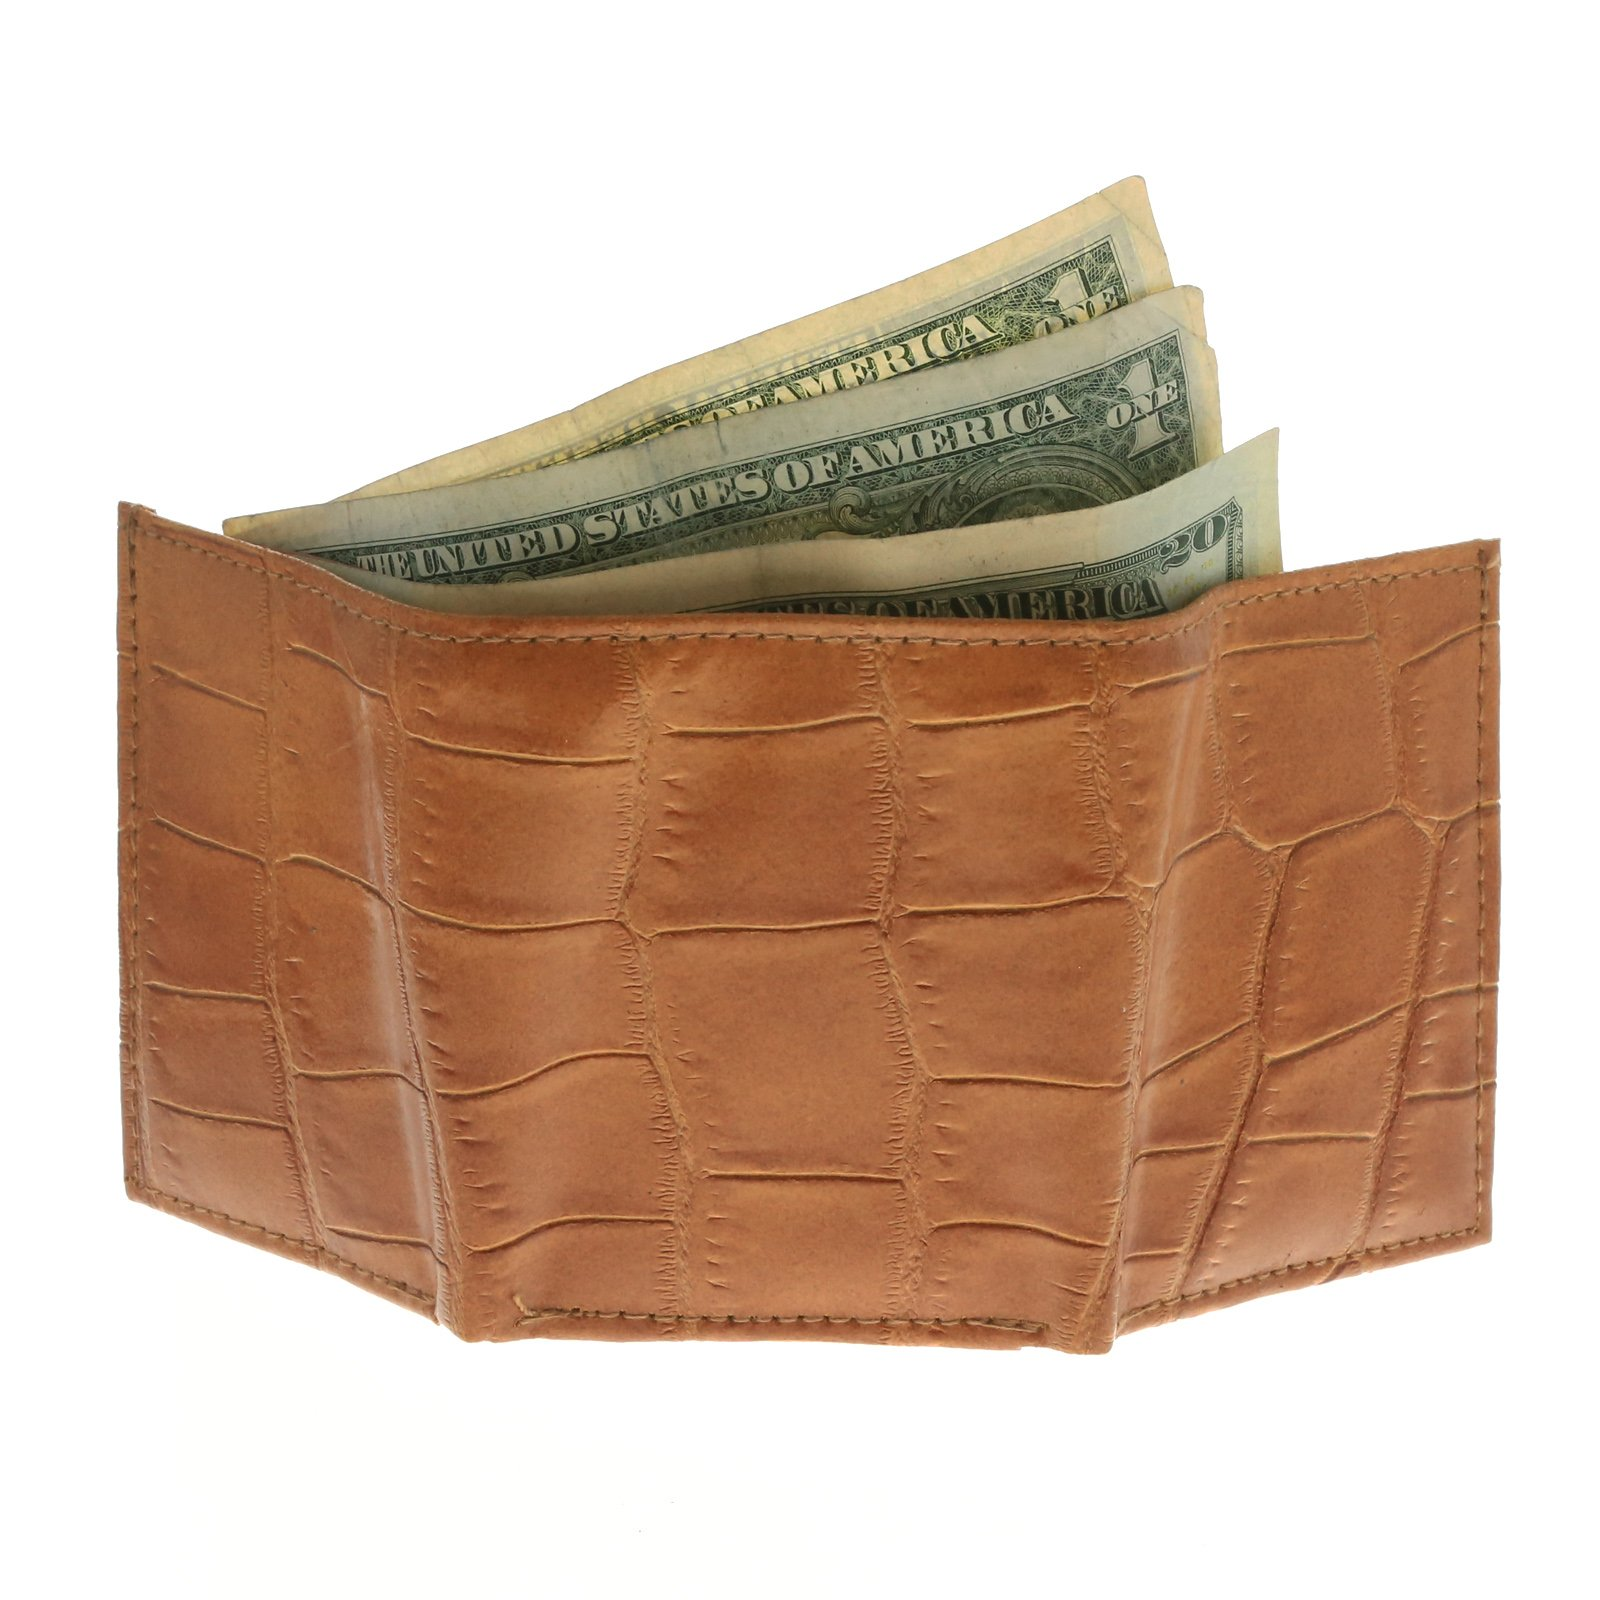 Brandon Dallas Spacious Tri-fold Tan Wallet Hand Crafted with Genuine Leather